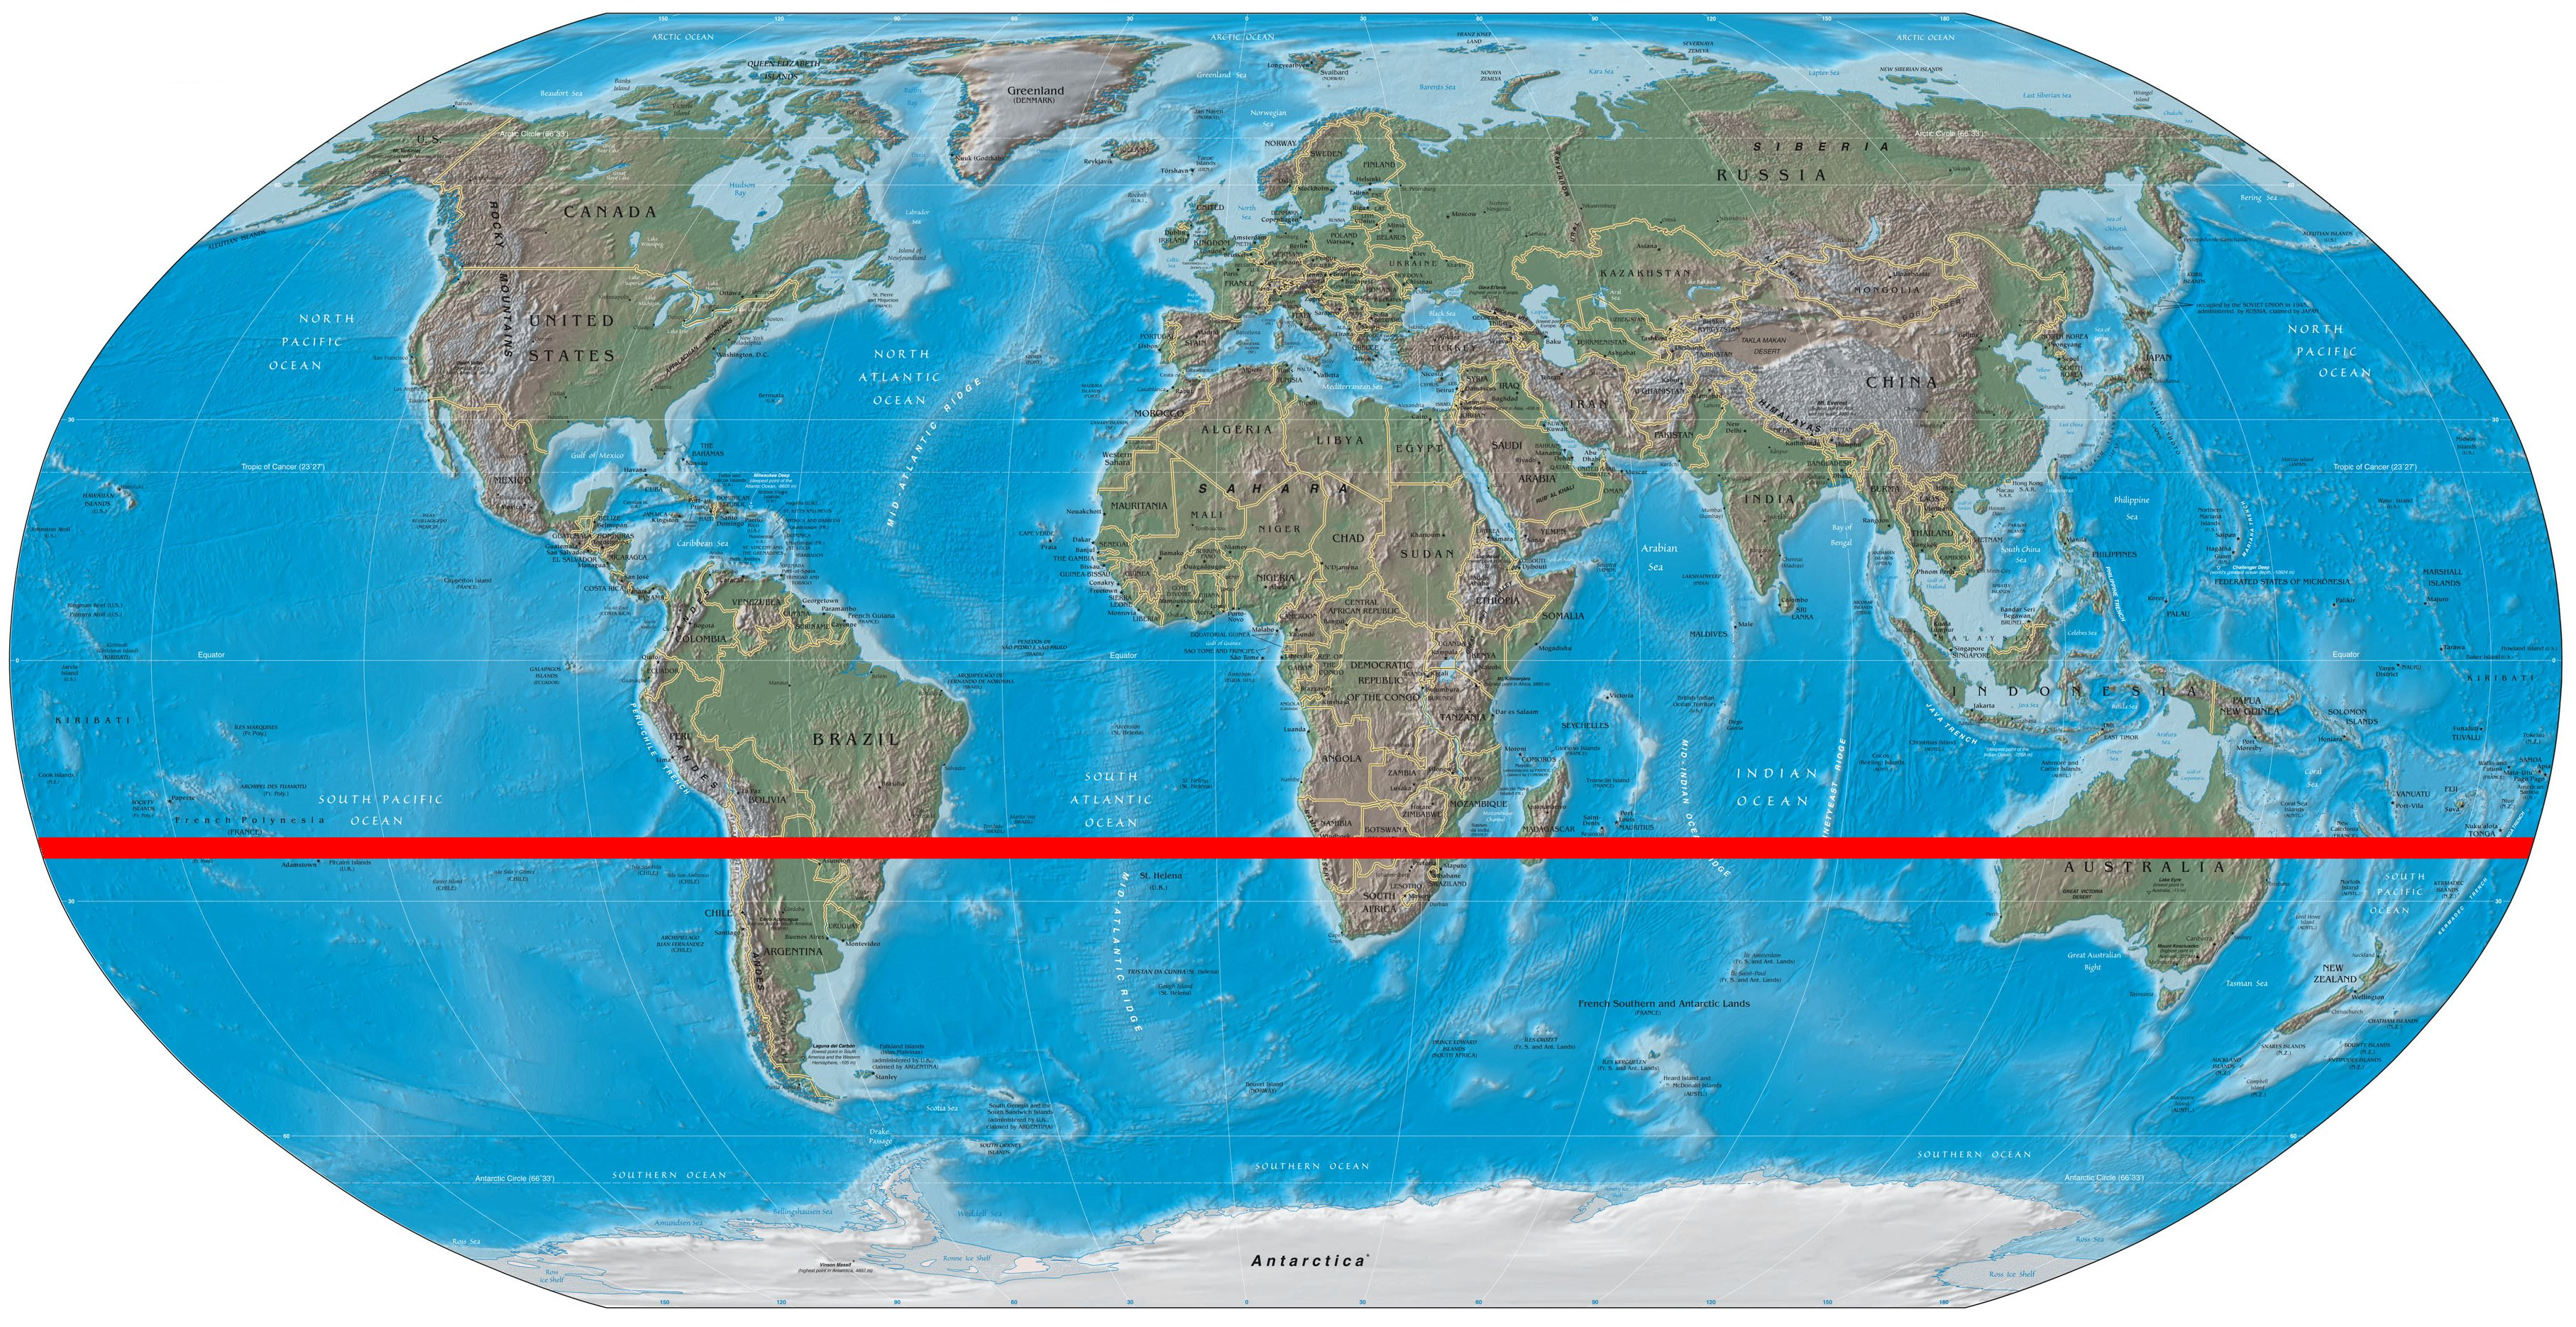 Where does the Tropic of Capricorn cross Australia